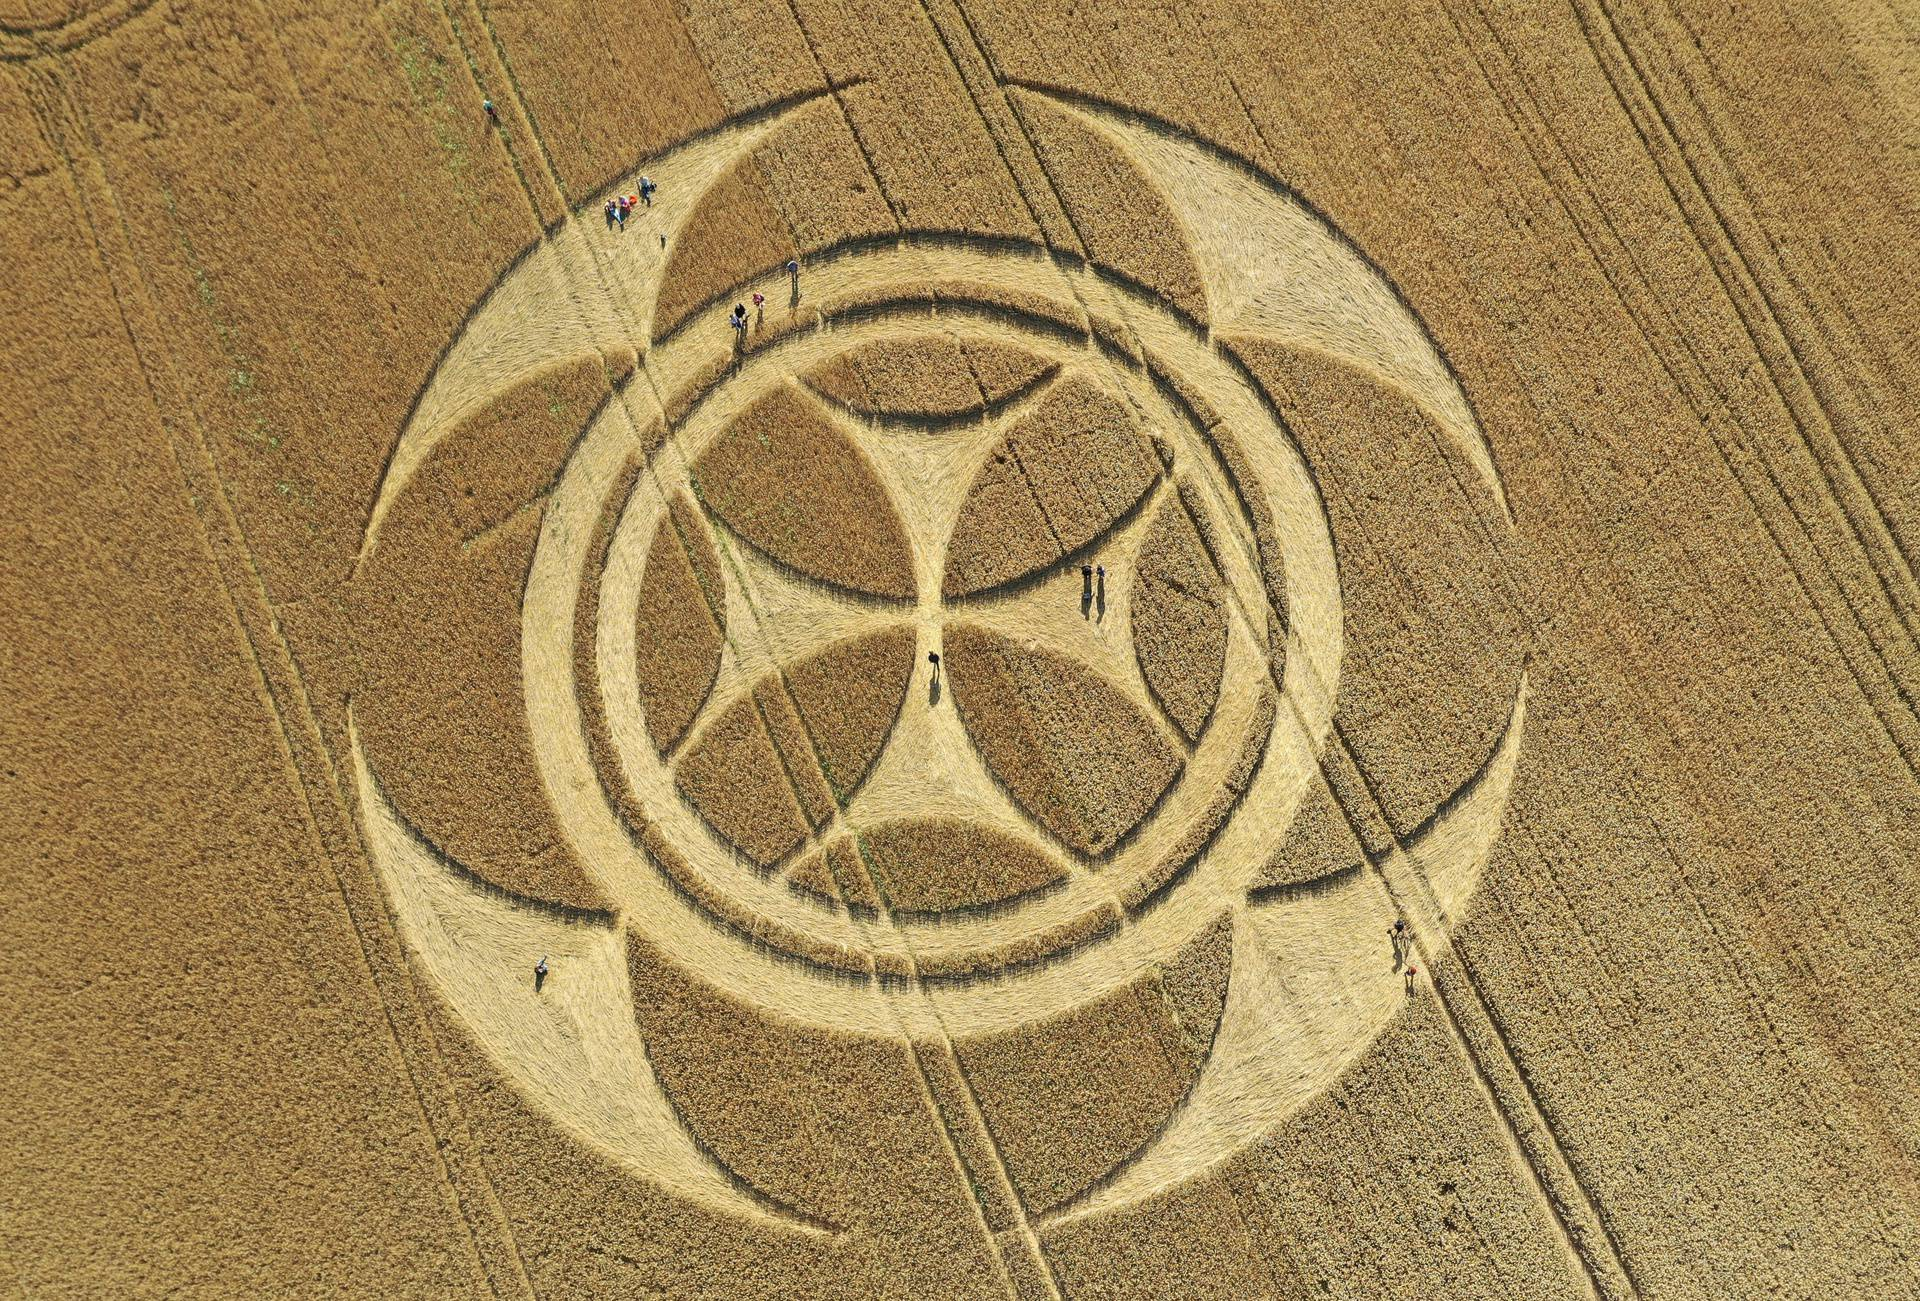 Visitors stand inside a crop circle in a wheat field in Vimy